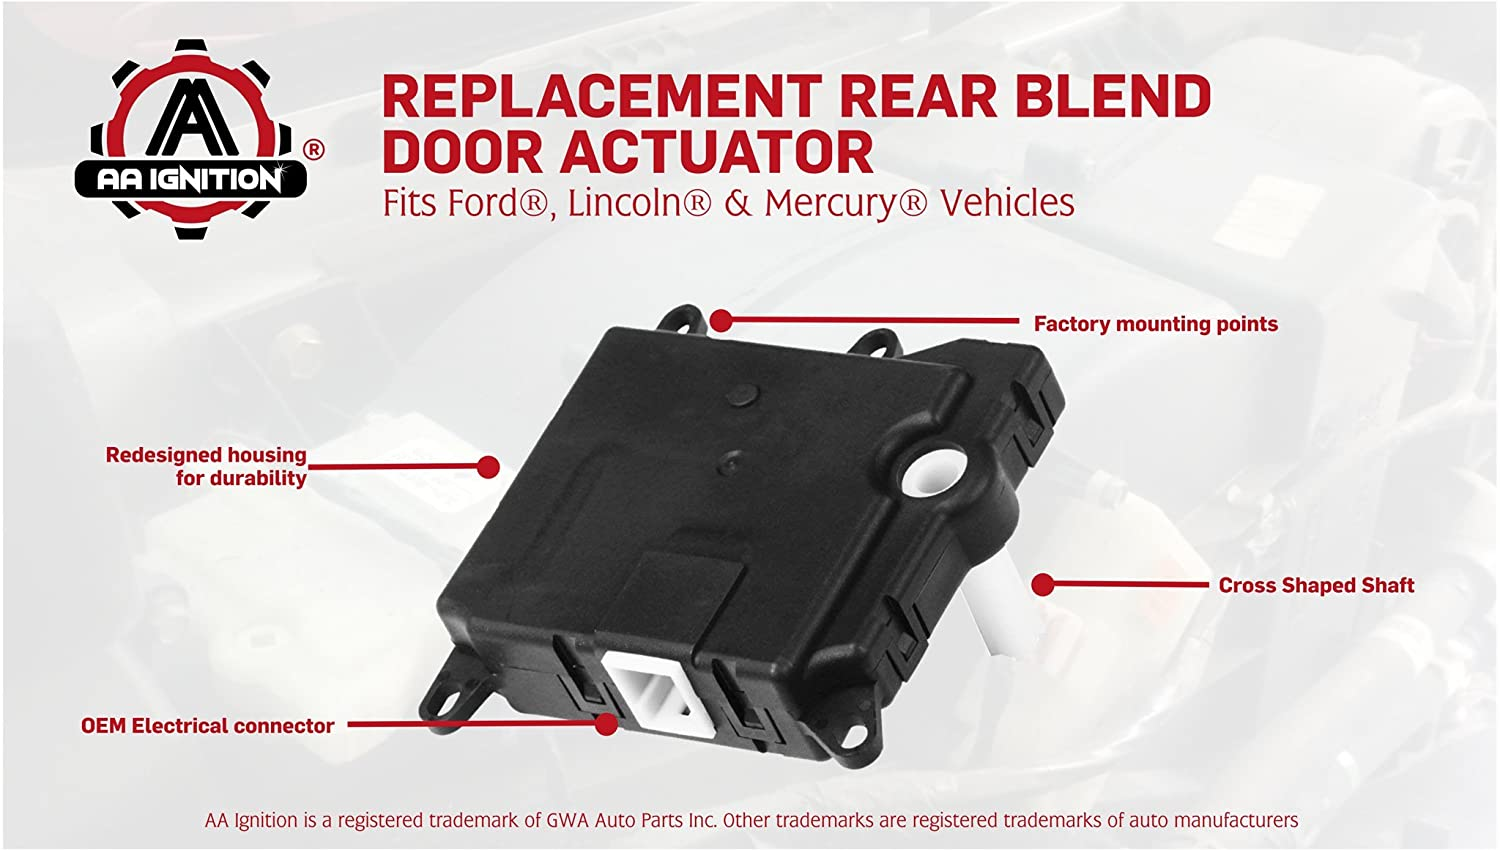 Rear Blend Door Actuator - Replaces 604-213, 1L2Z19E616BA, YH-1743 - Fits  Ford Expedition, Explorer, Lincoln Navigator, Aviator, Mercury Mountaineer  -